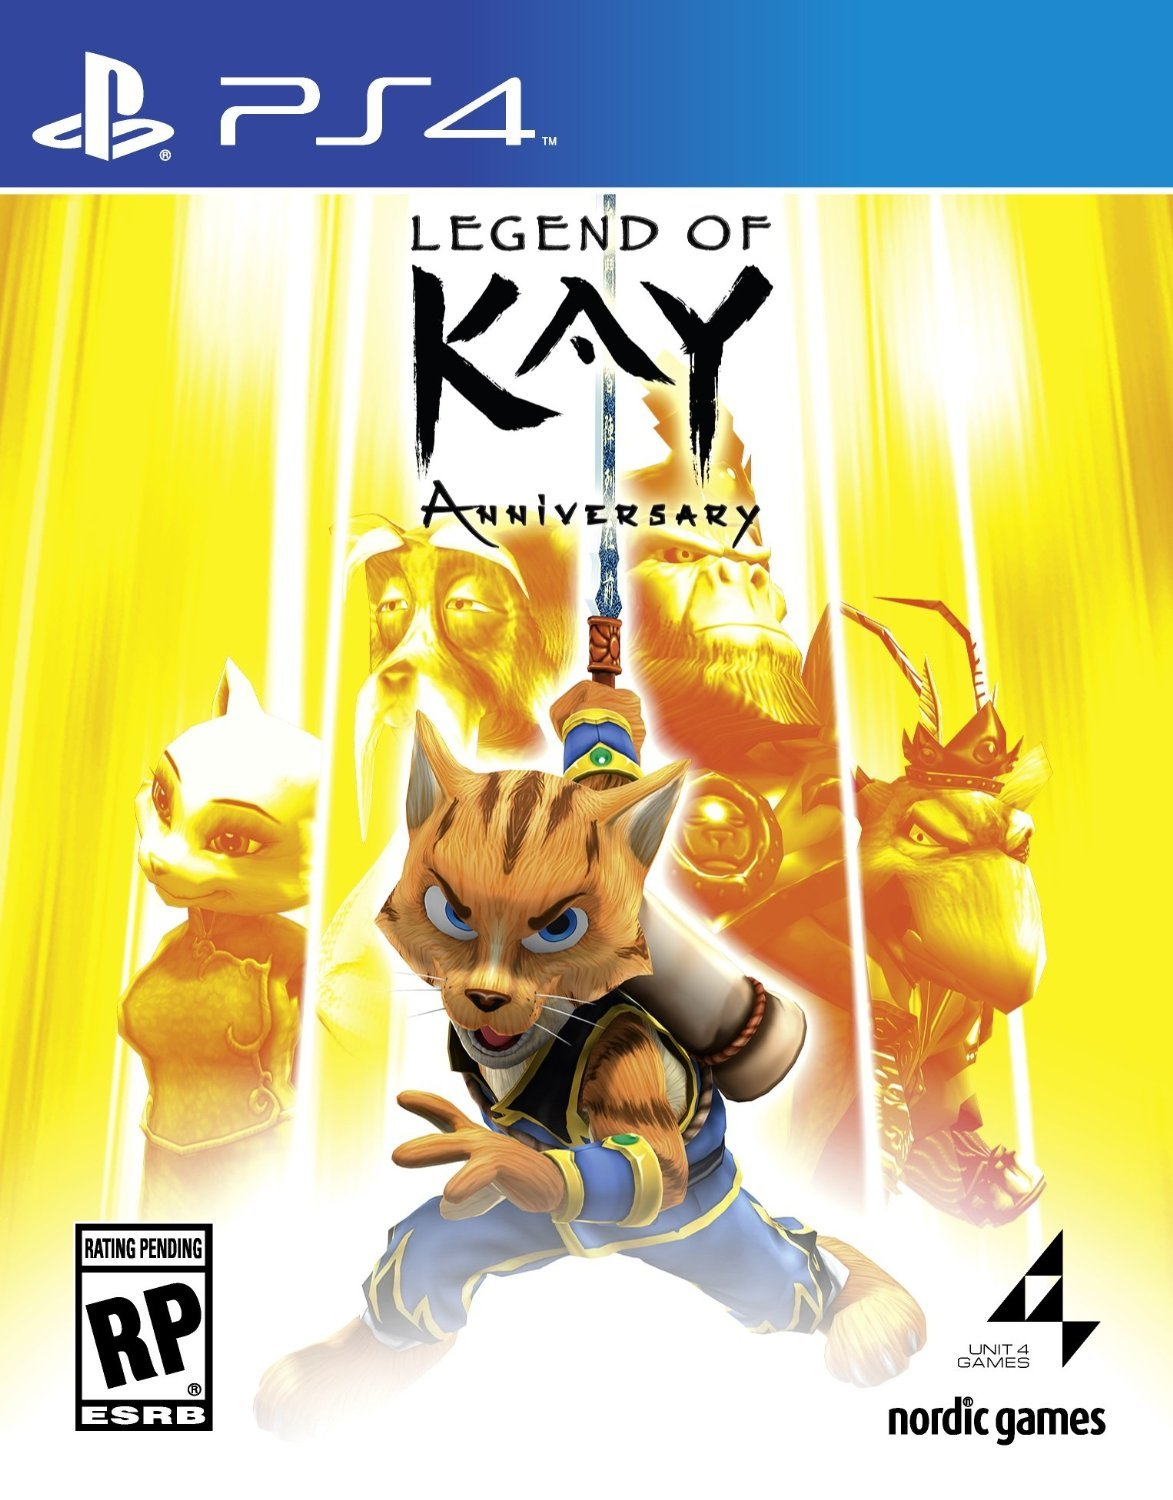 The Legend of Kay Anniversary (PS4) Review 5